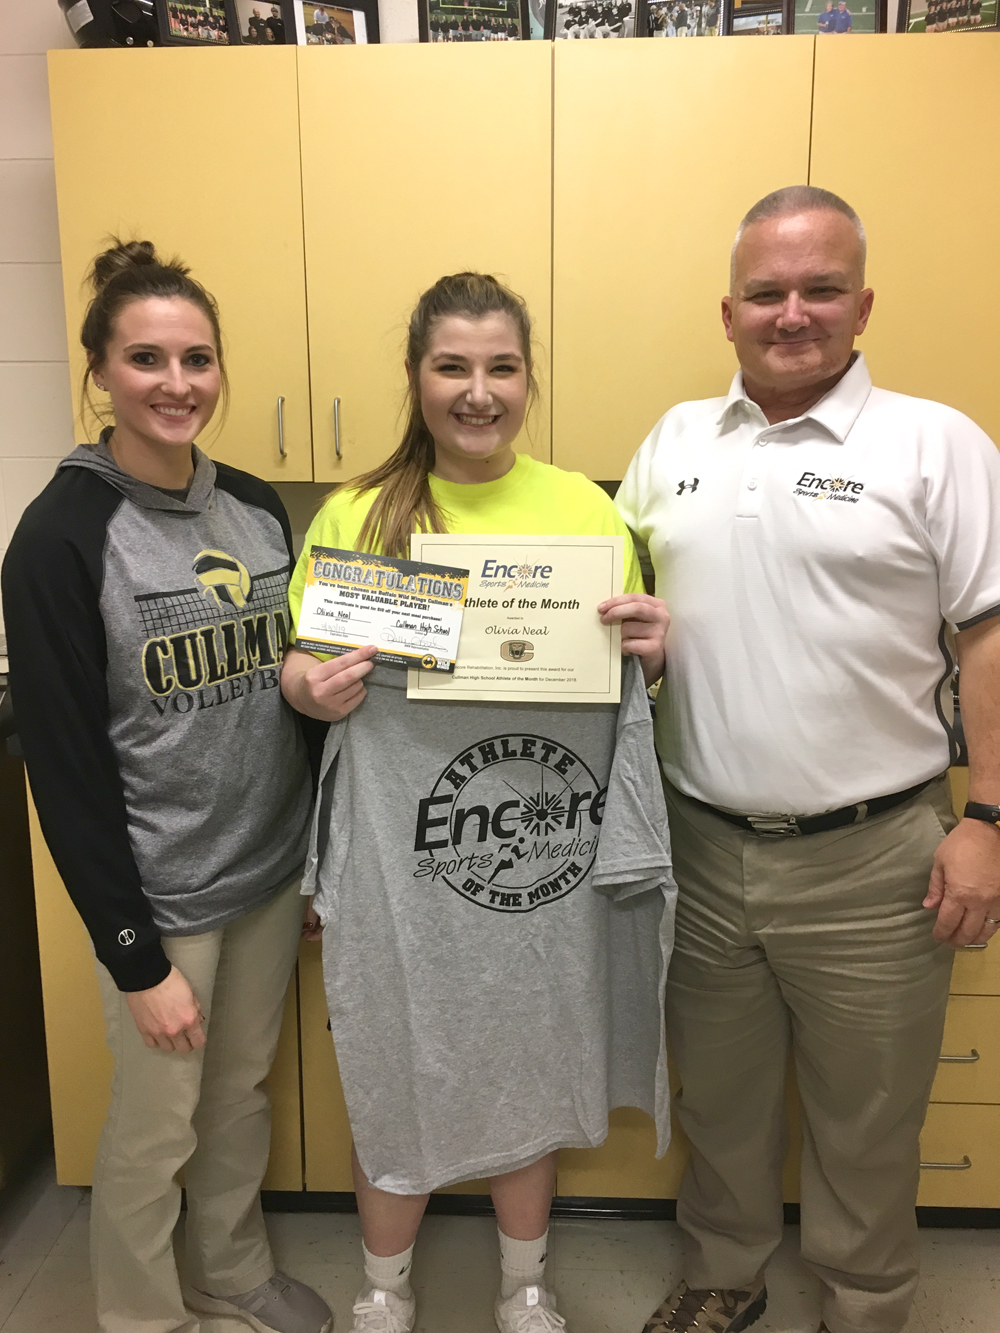 Oliva Neal is Athlete of the Month for Cullman High School and Encore Rehabilitation-Cullman #EncoreRehab